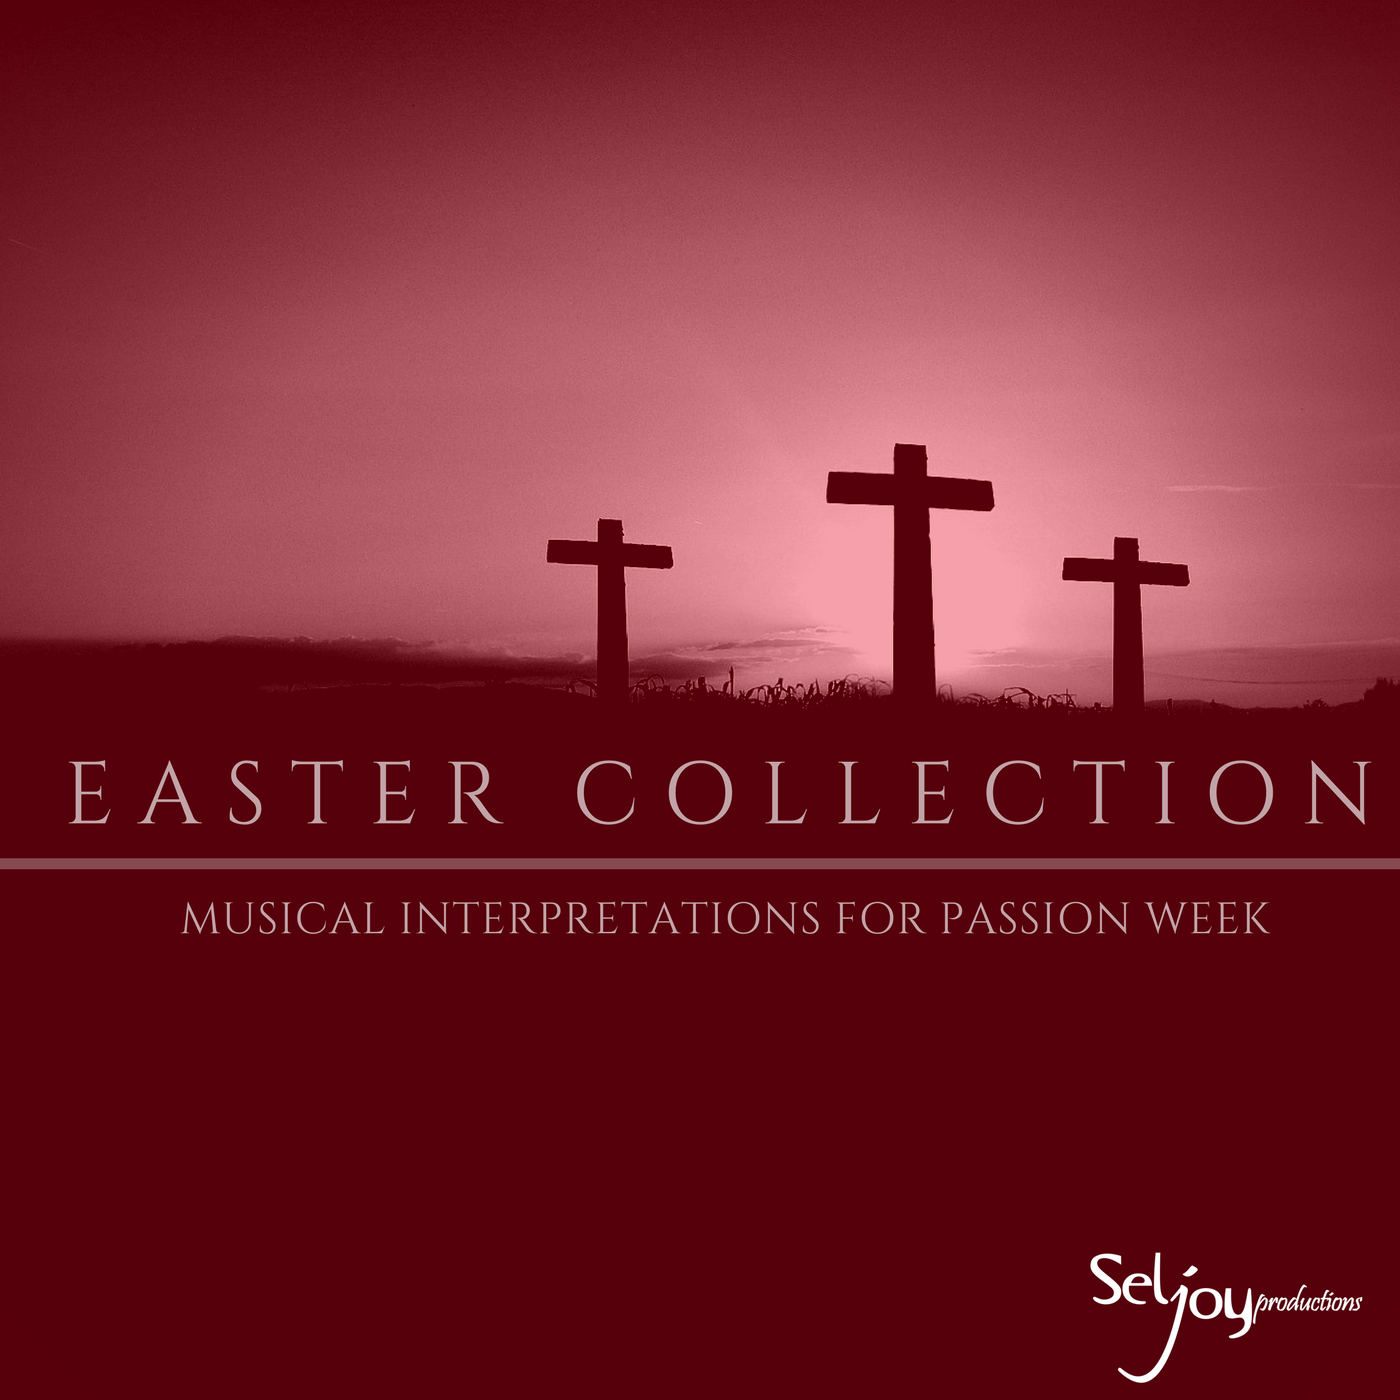 Easter Collection Graphic.png